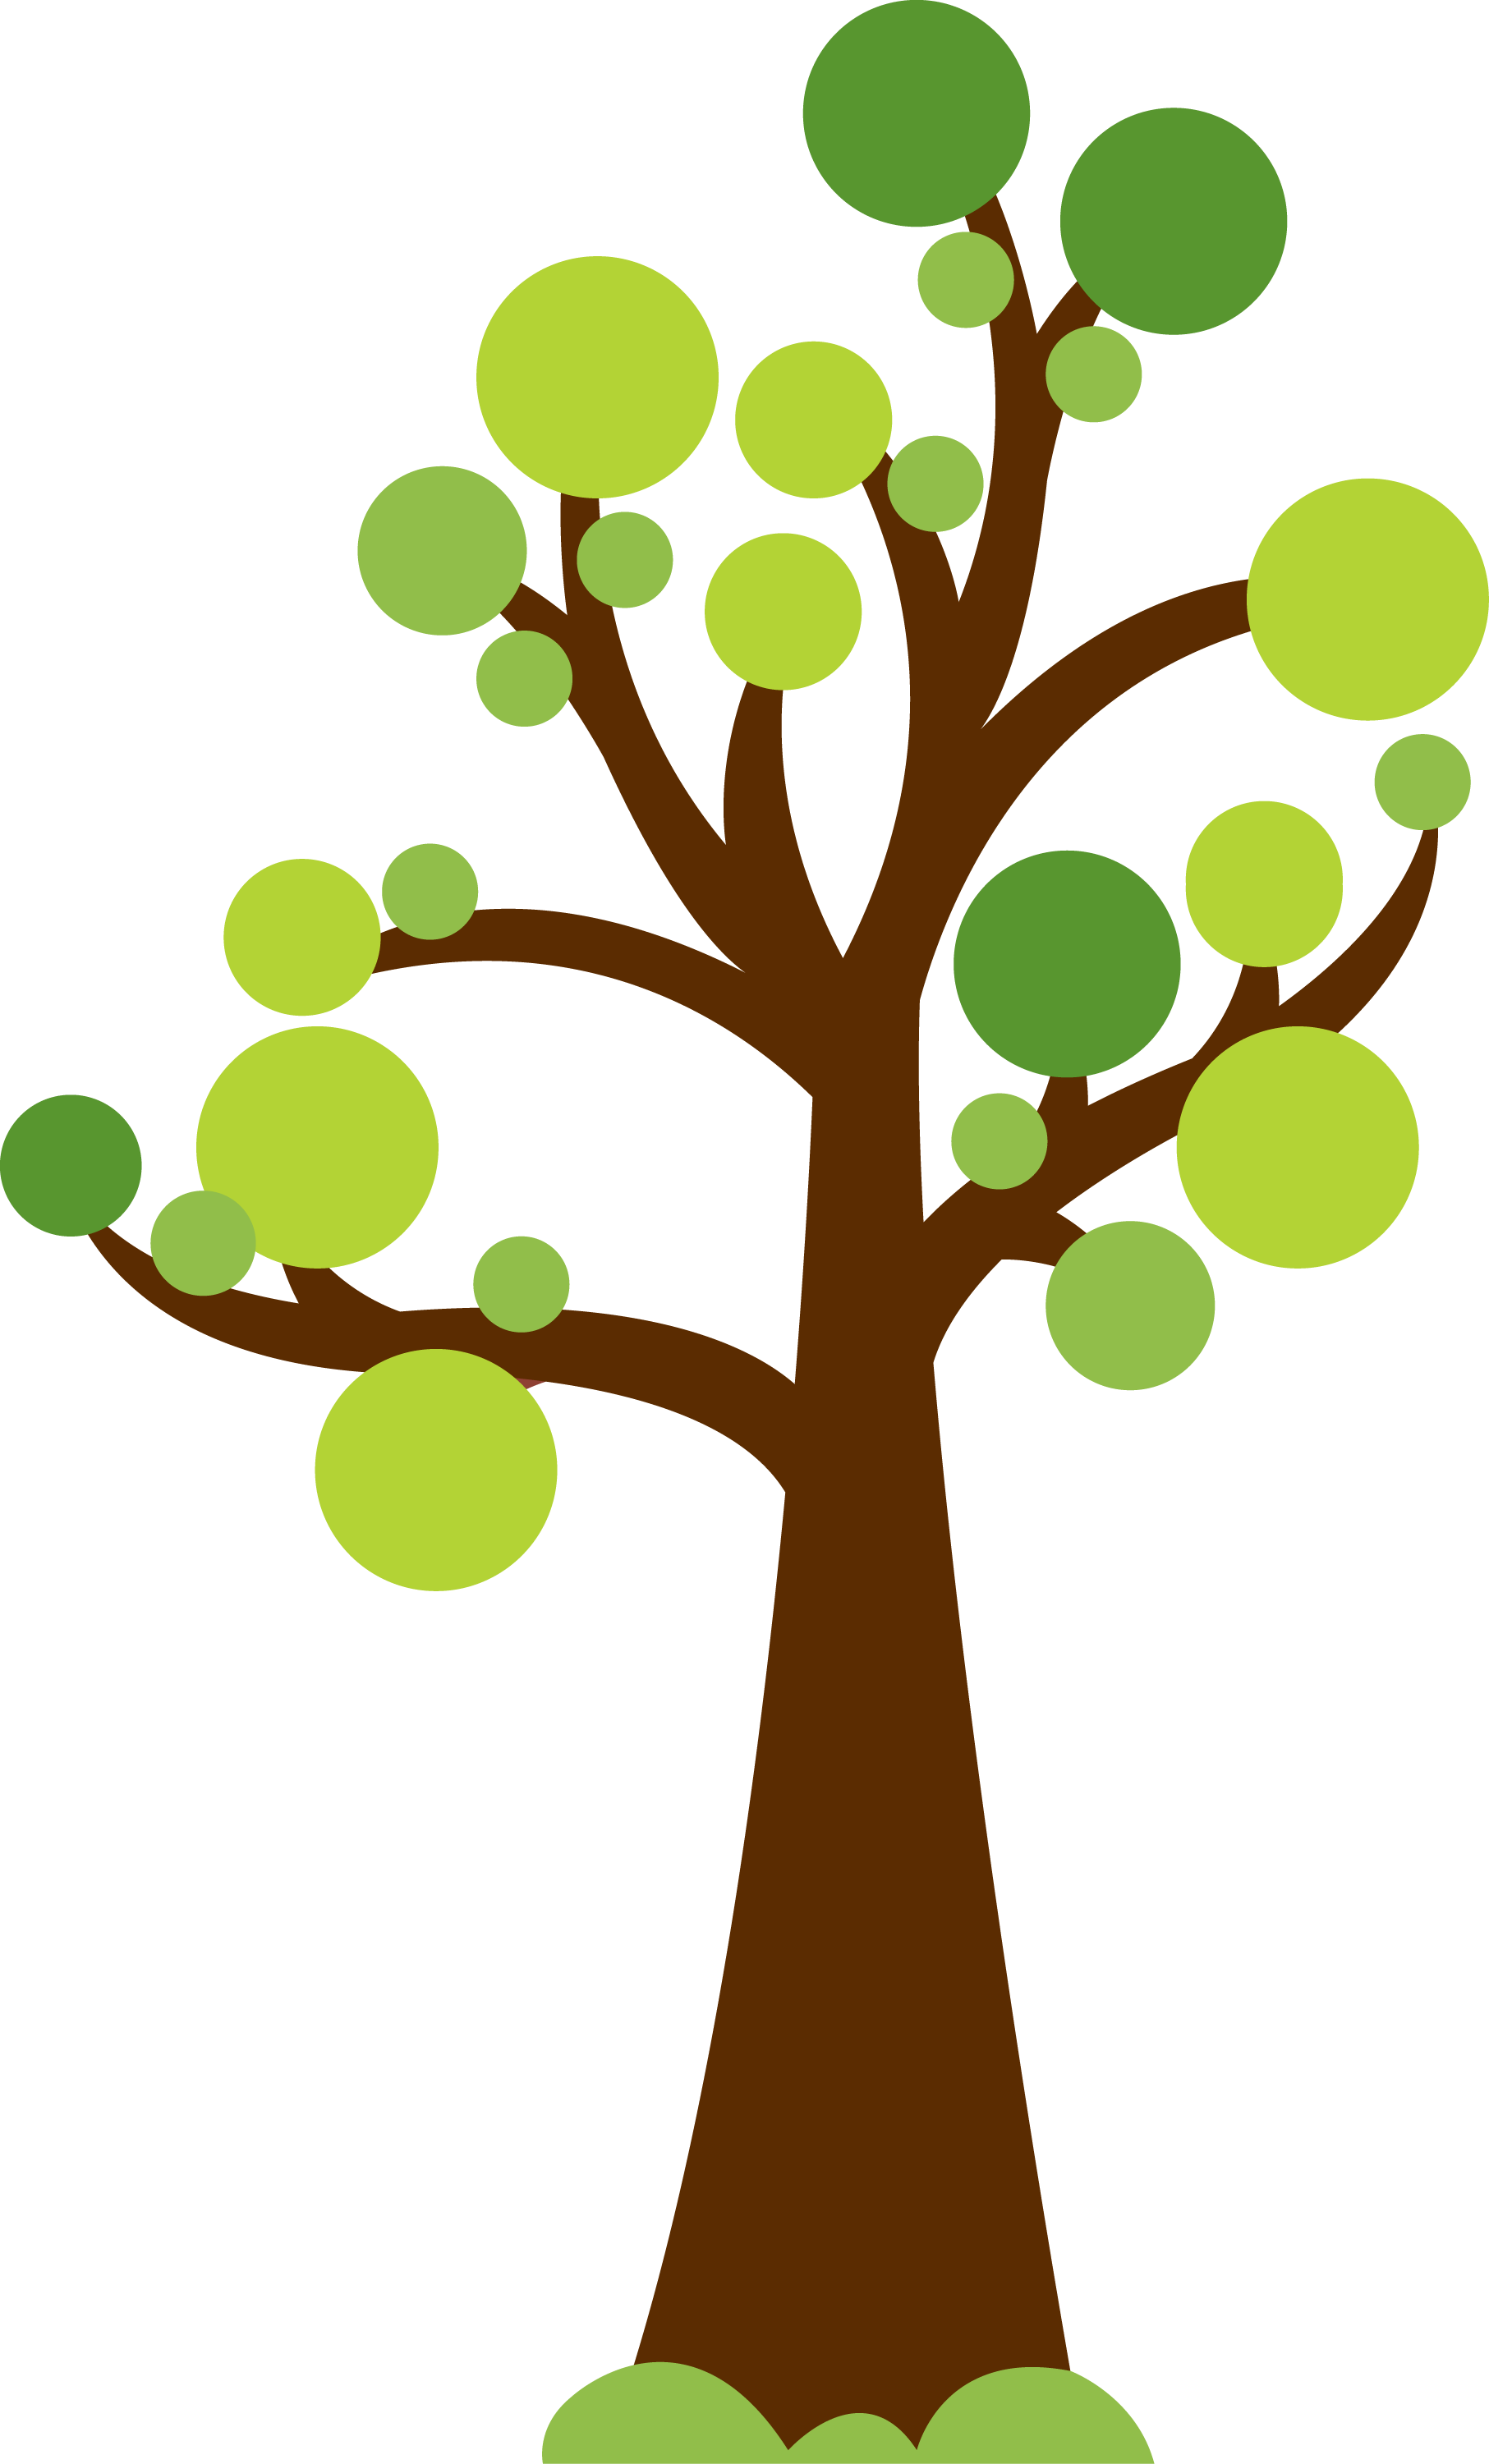 1813x3001 Tree With Circles For Leaves. Cute Image For Summer Or Garden